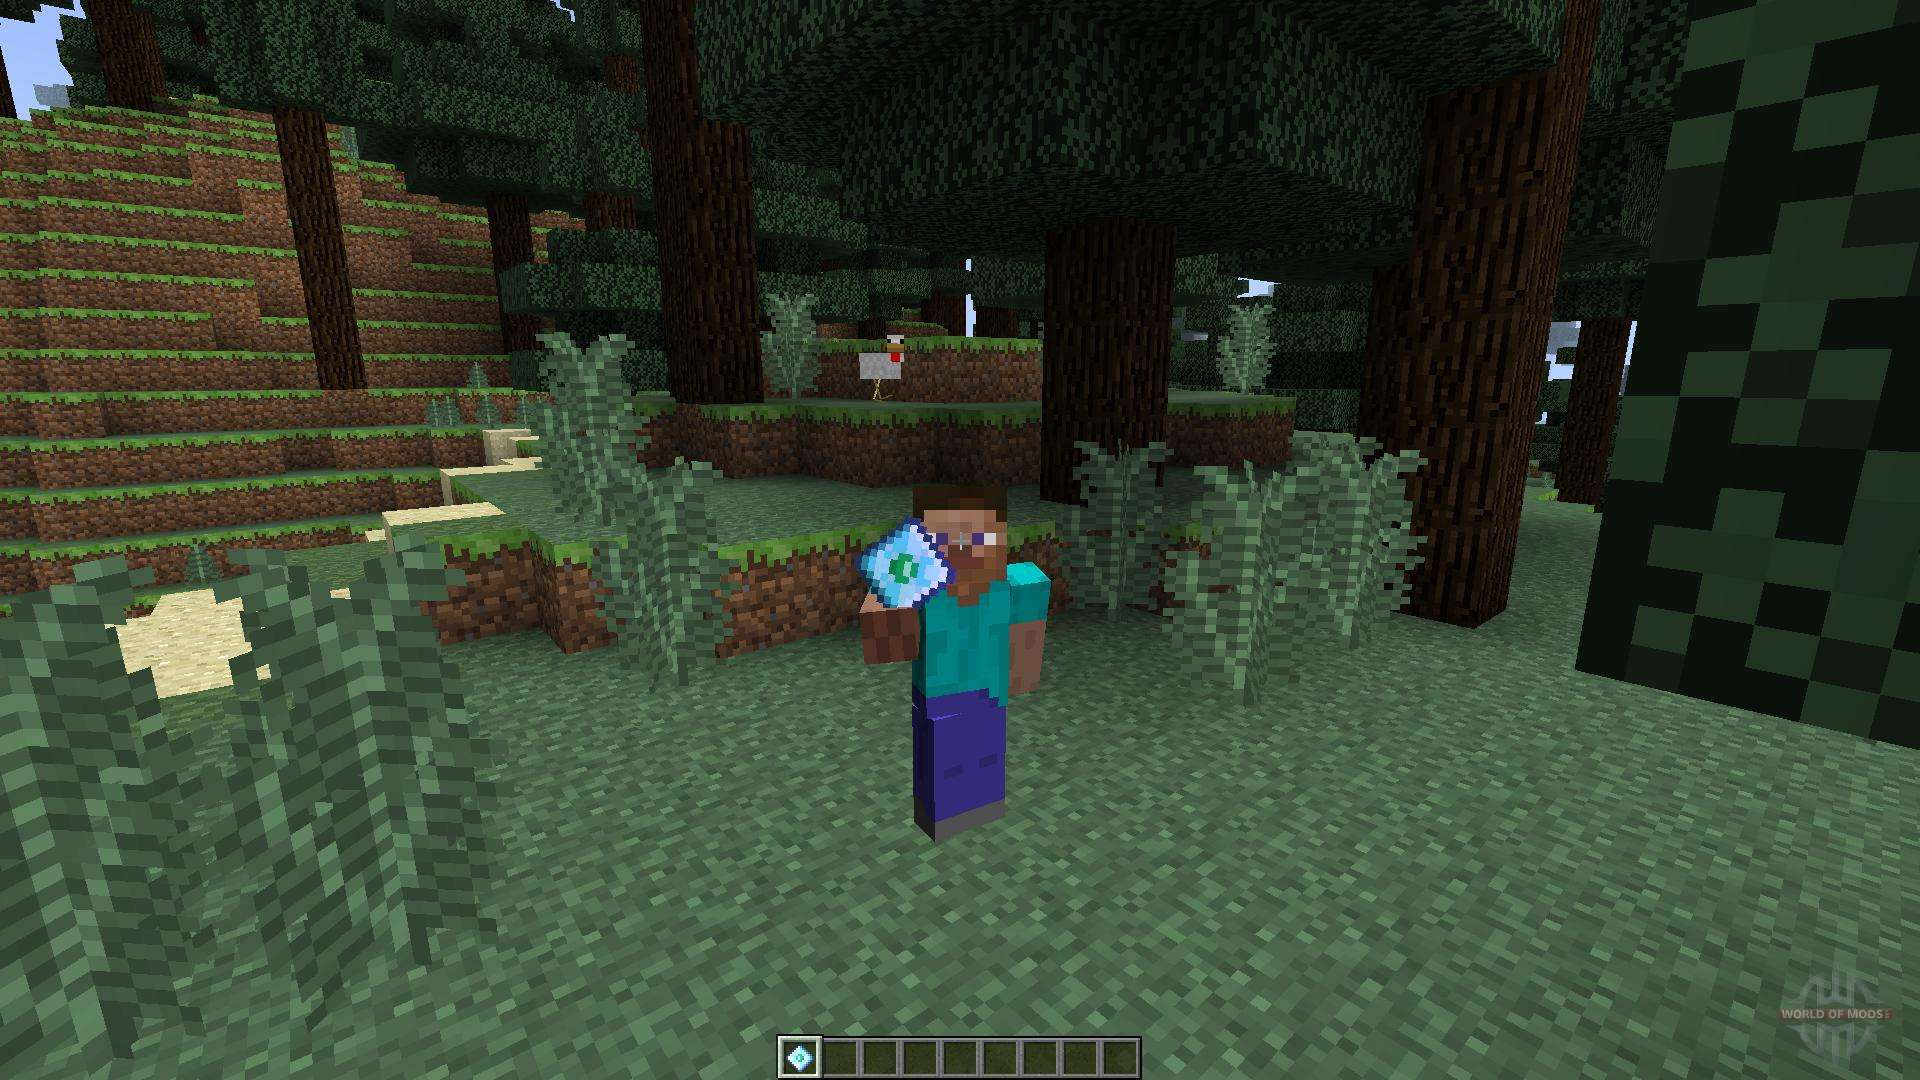 minecraft xp bank mod 1.7.10